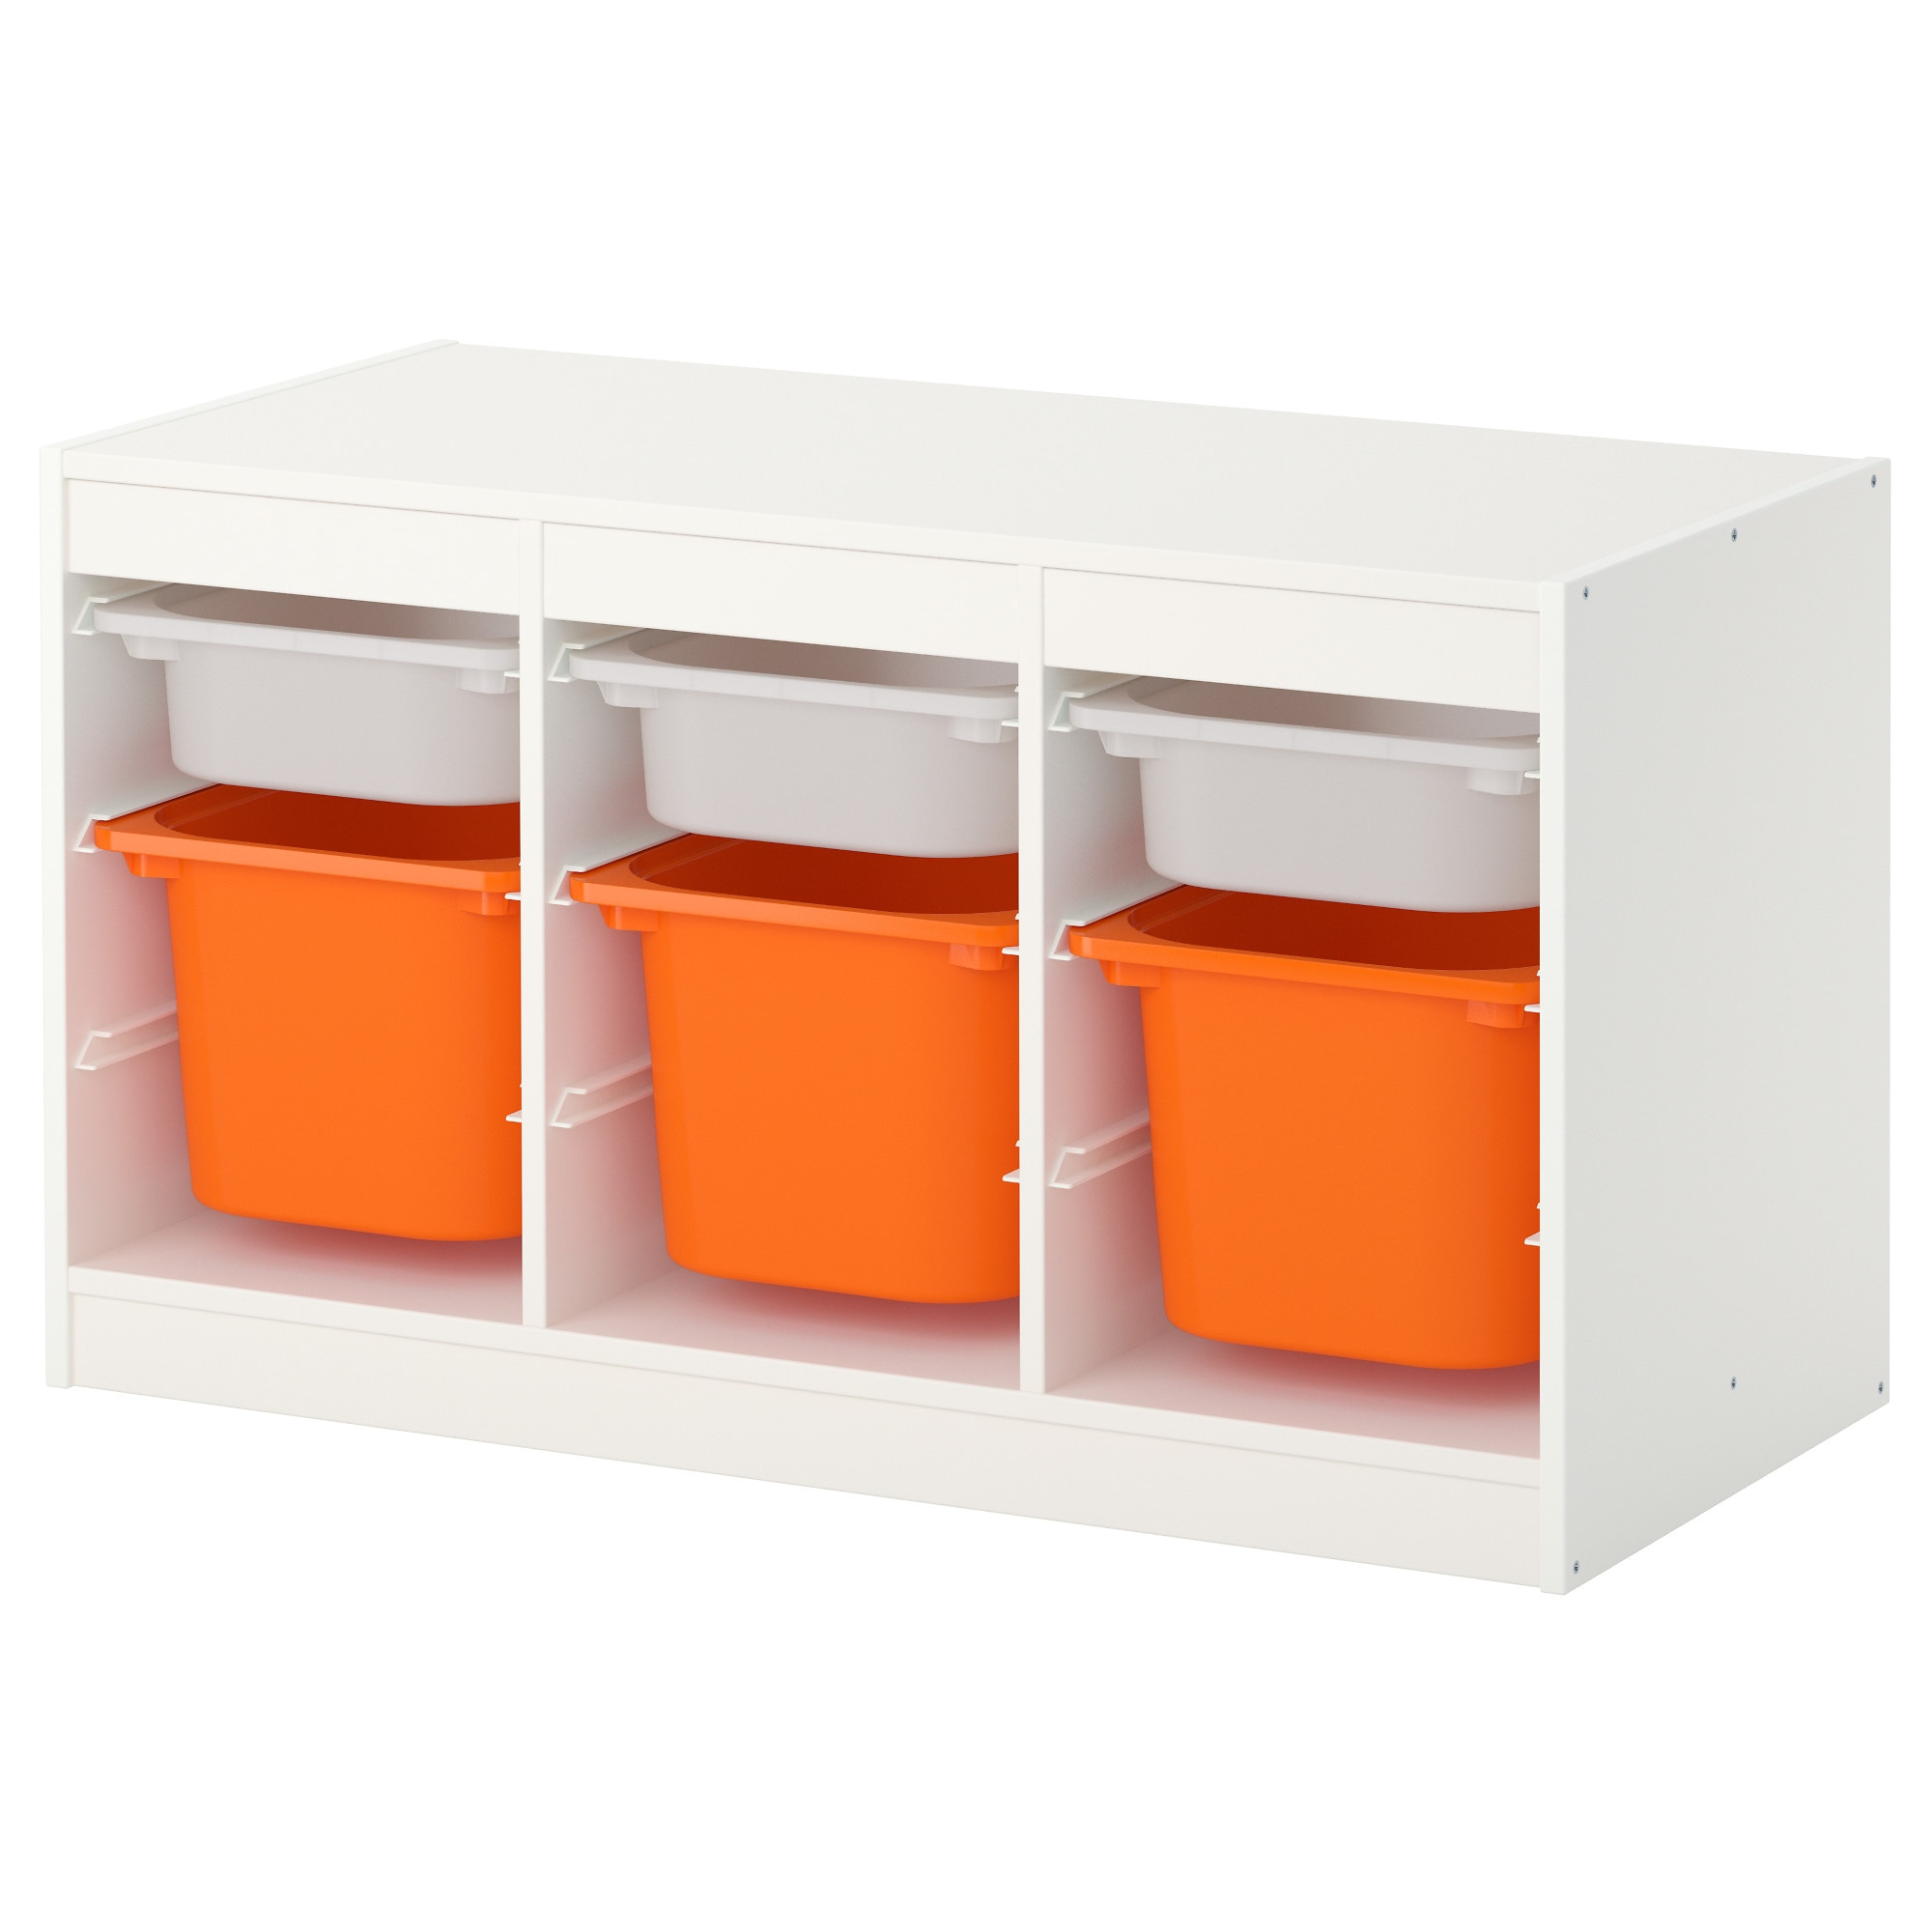 Trofast Storage Combination With Bo White 99x44x56 Cm  sc 1 st  Credainatcon.com & Ikea Toy Storage Unit | Credainatcon.com